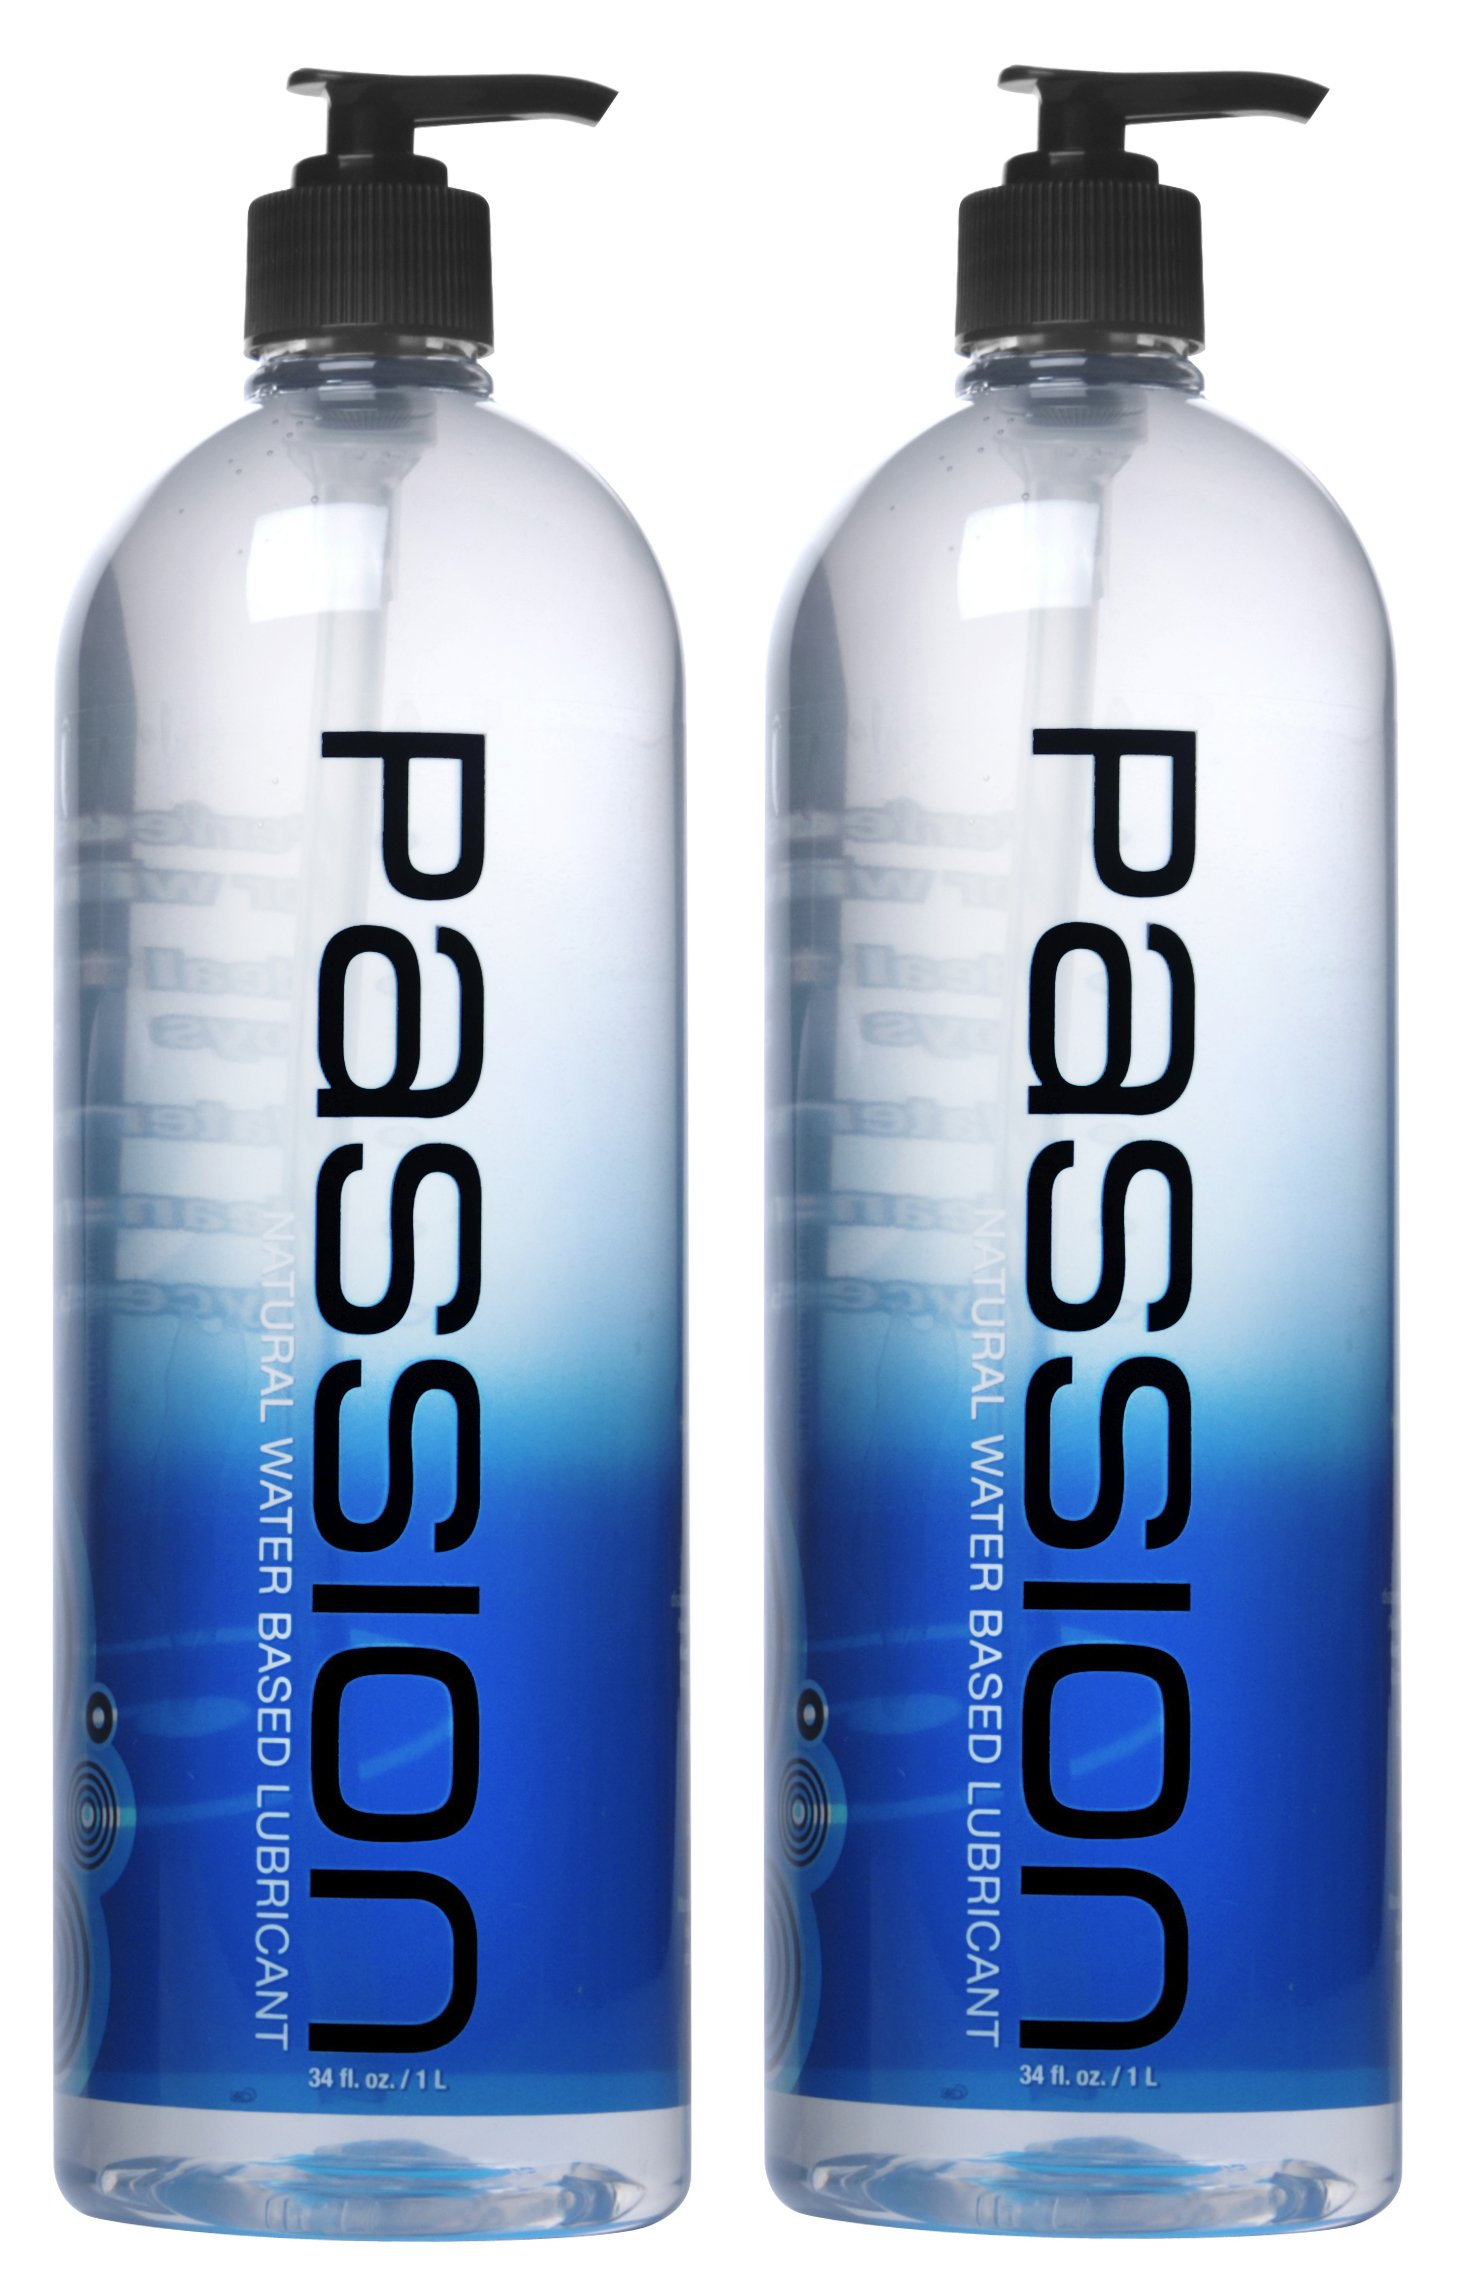 Twin Pack Natural Water-Based Lubricant, 34 oz Each, Total 68oz by Passion Lubes